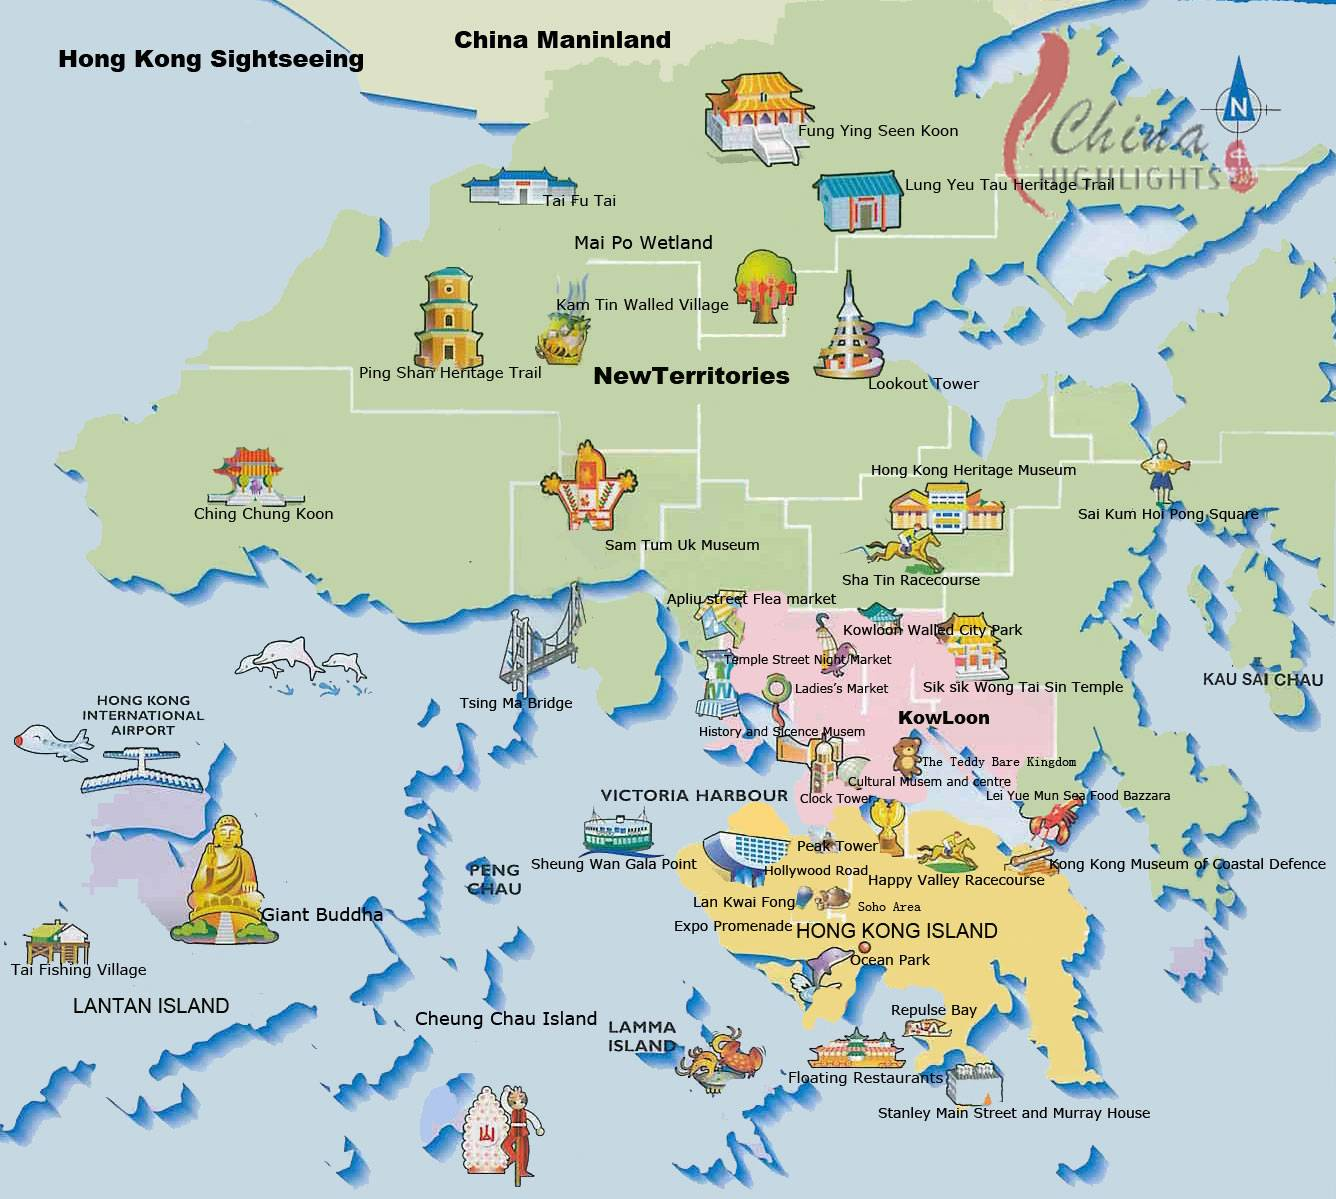 Map Of Hong Kong Tourist Attractions Large Hong Kong City Maps for Free Download and Print | High